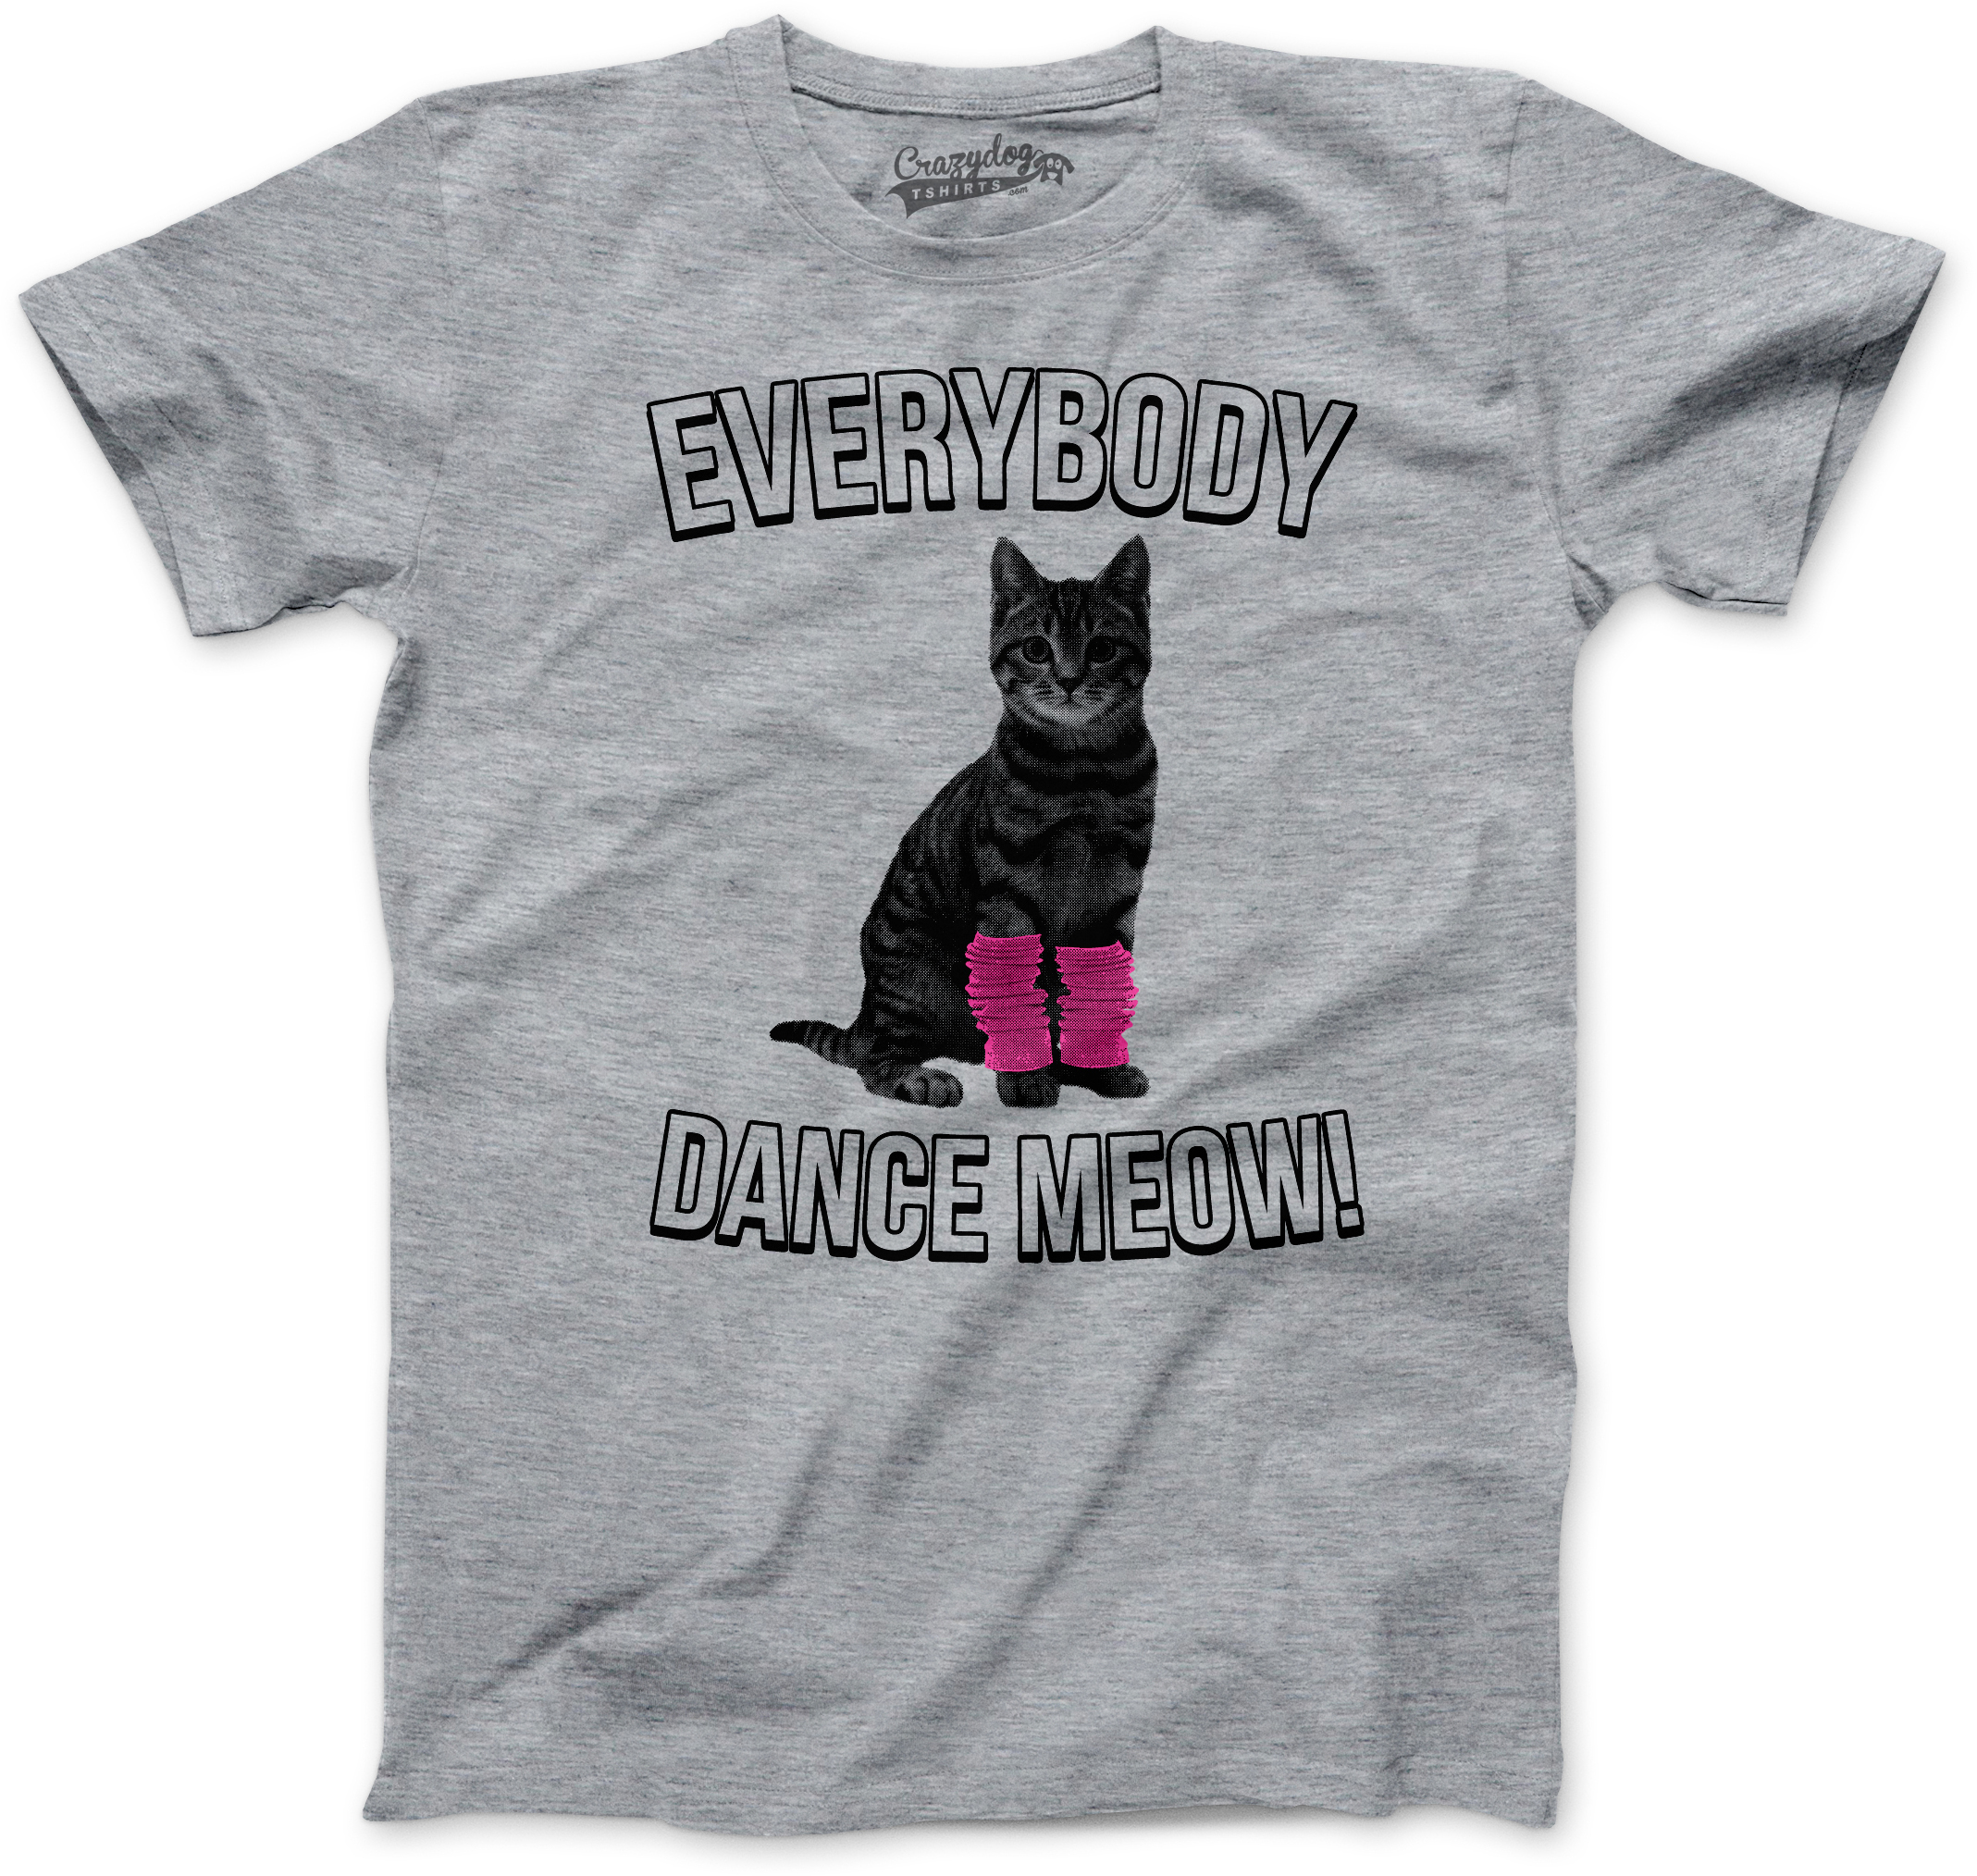 9e1b1364 Youth Everybody Dance Meow T Shirt Funny Kitty Cat Tee for Kids (grey) S